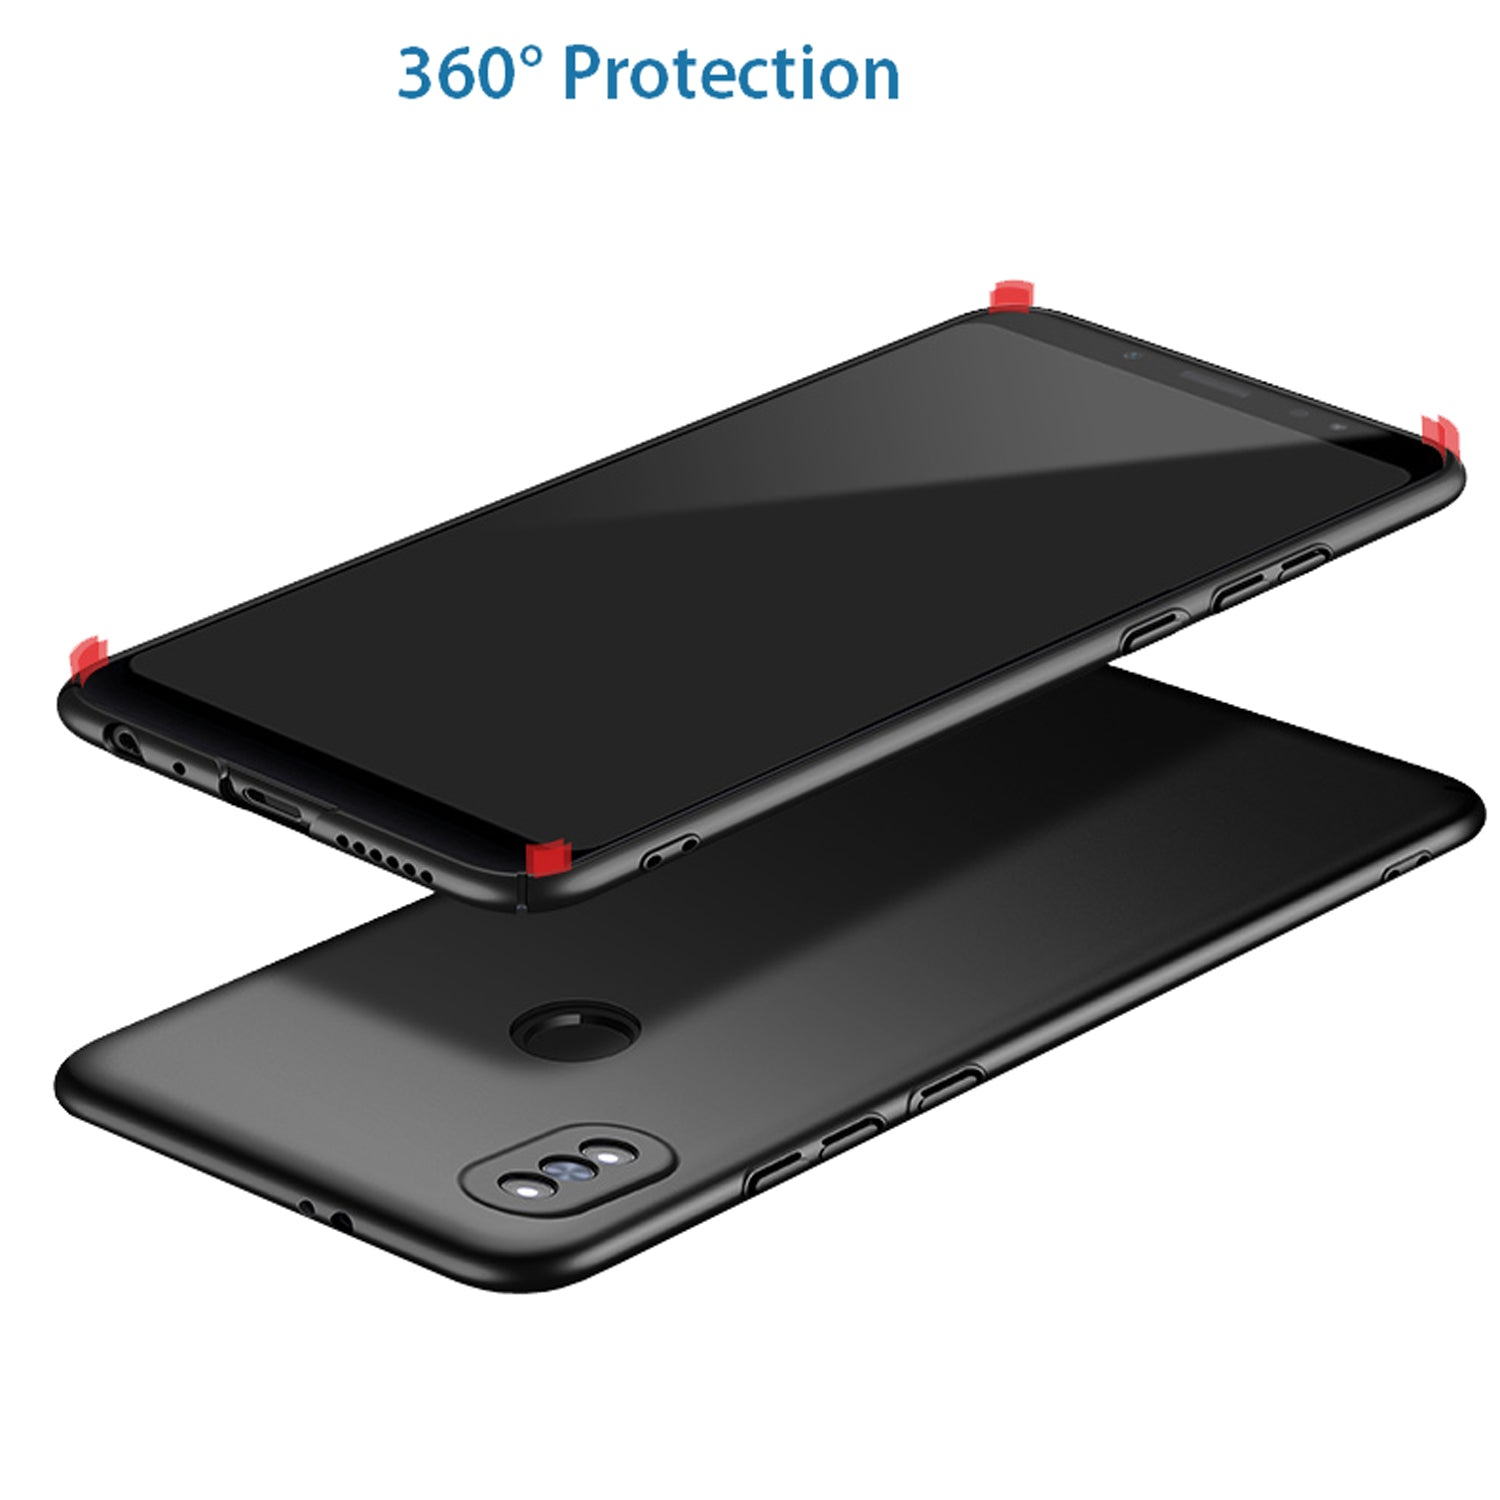 Silk Smooth Finish All Sides Protection Slim Camera Lens + Back Case Cover For Xiaomi Redmi Note 5 PRO - Black - Mobizang